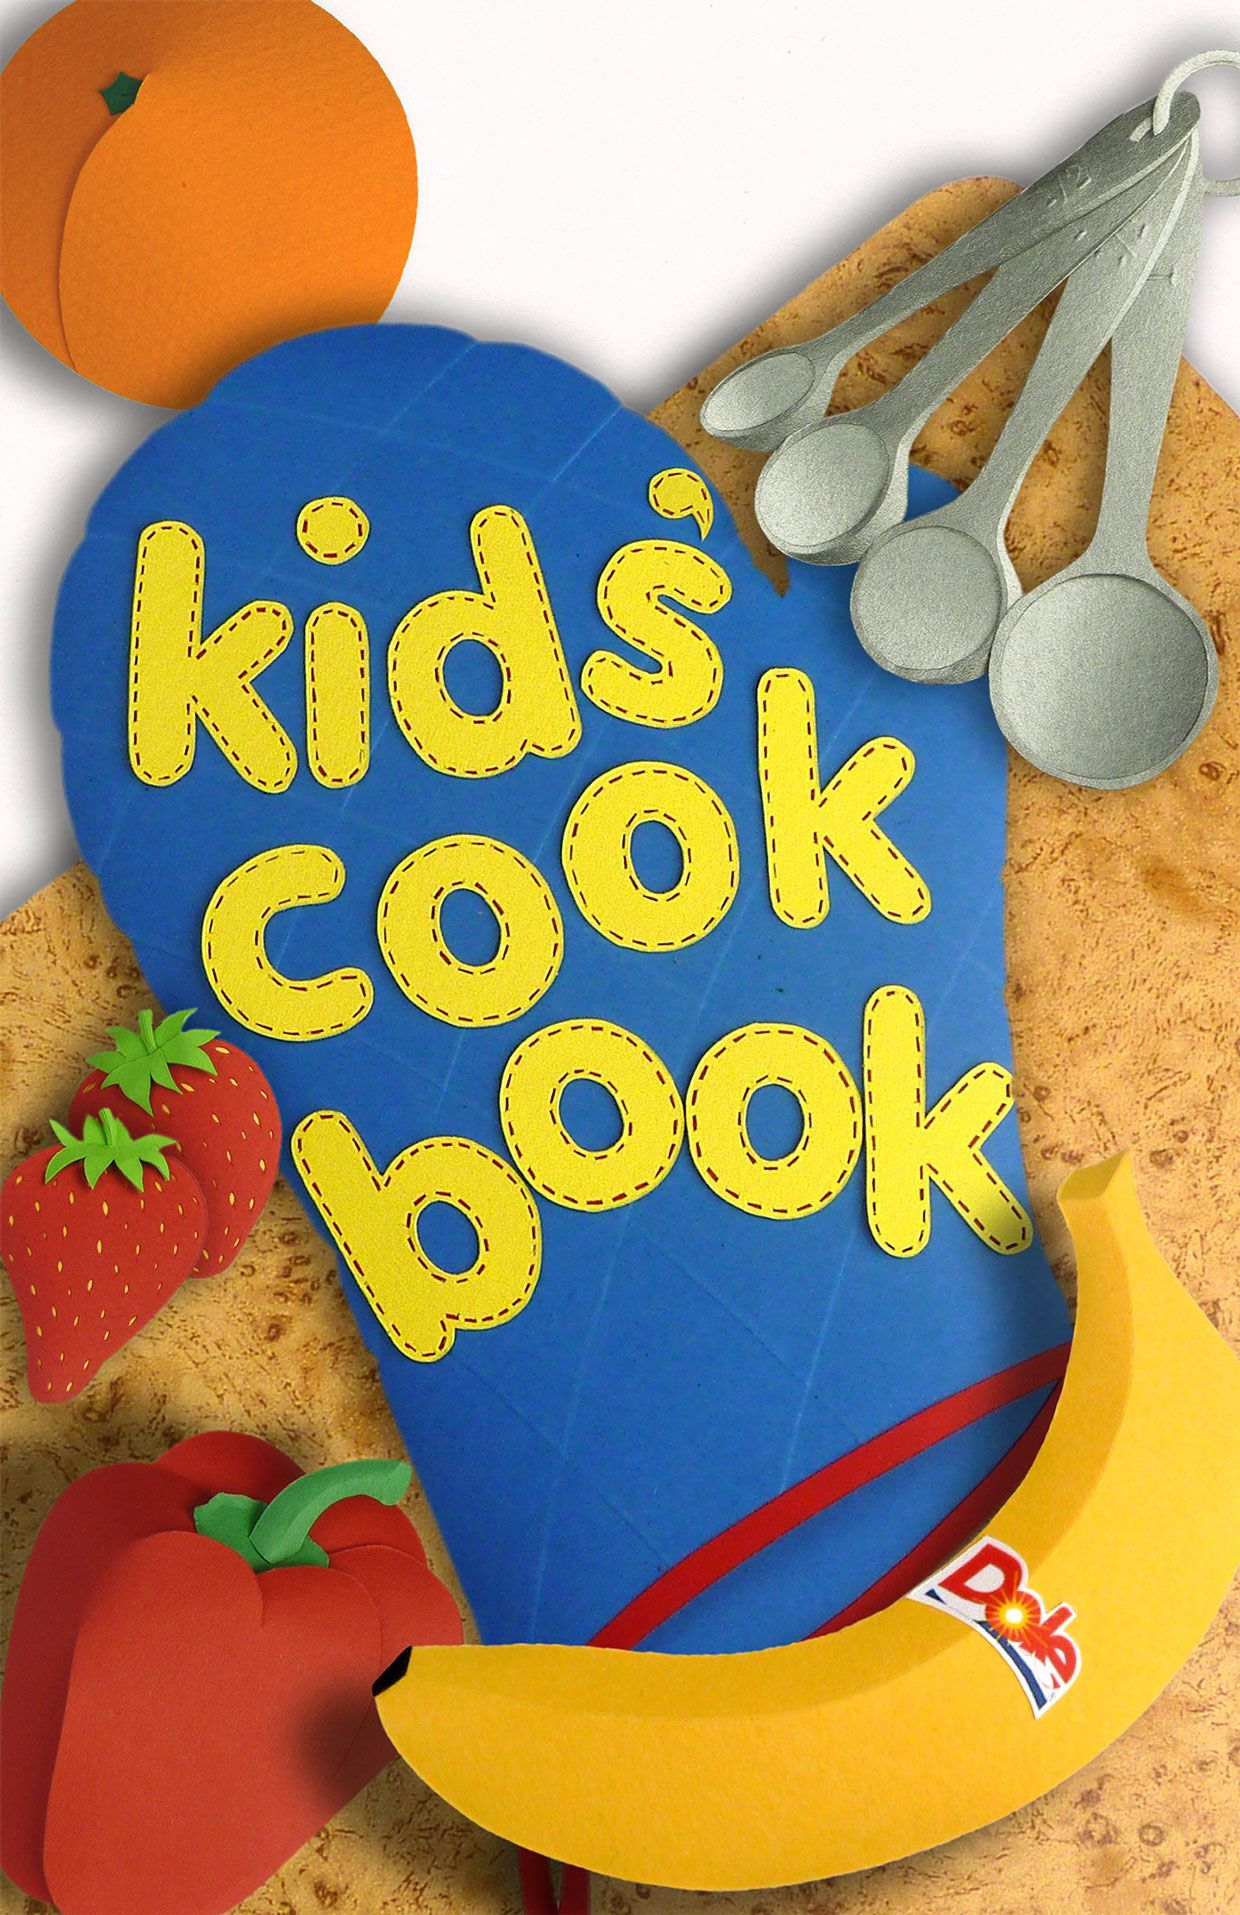 Kid's recipe book for Dole on Behance Cooking with kids